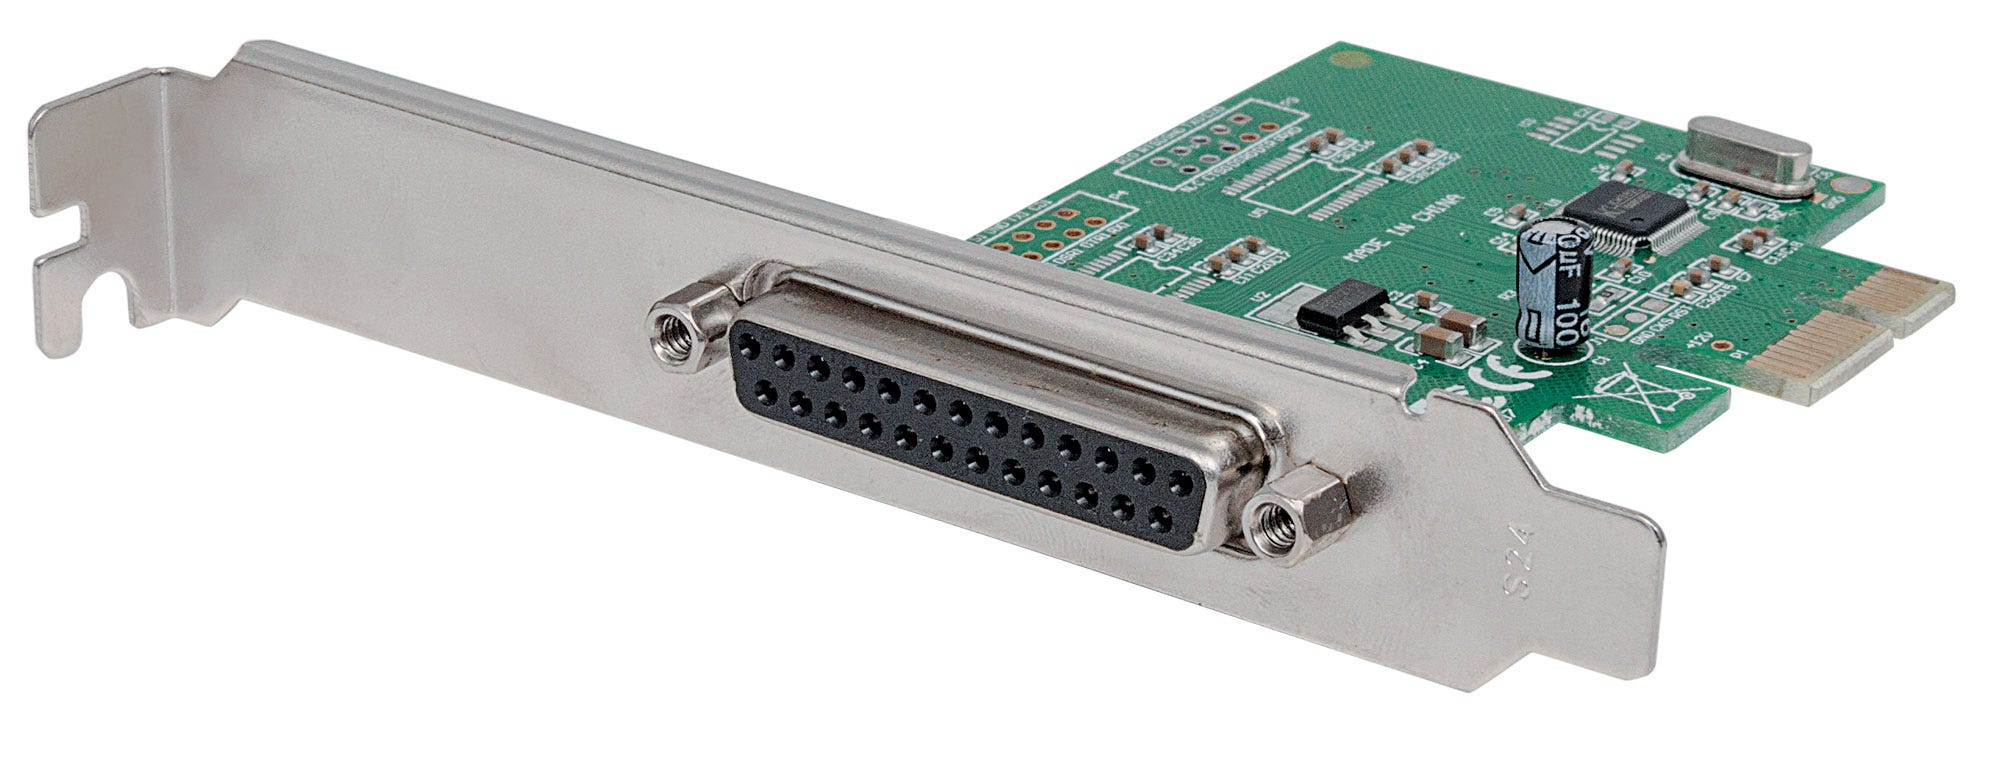 Manhattan 152099 - PCIe - Parallel - IEEE 1284 - CE - FCC - RoHS - WEEE - 2,5 Gbit/s - 68 mm - 120 mm